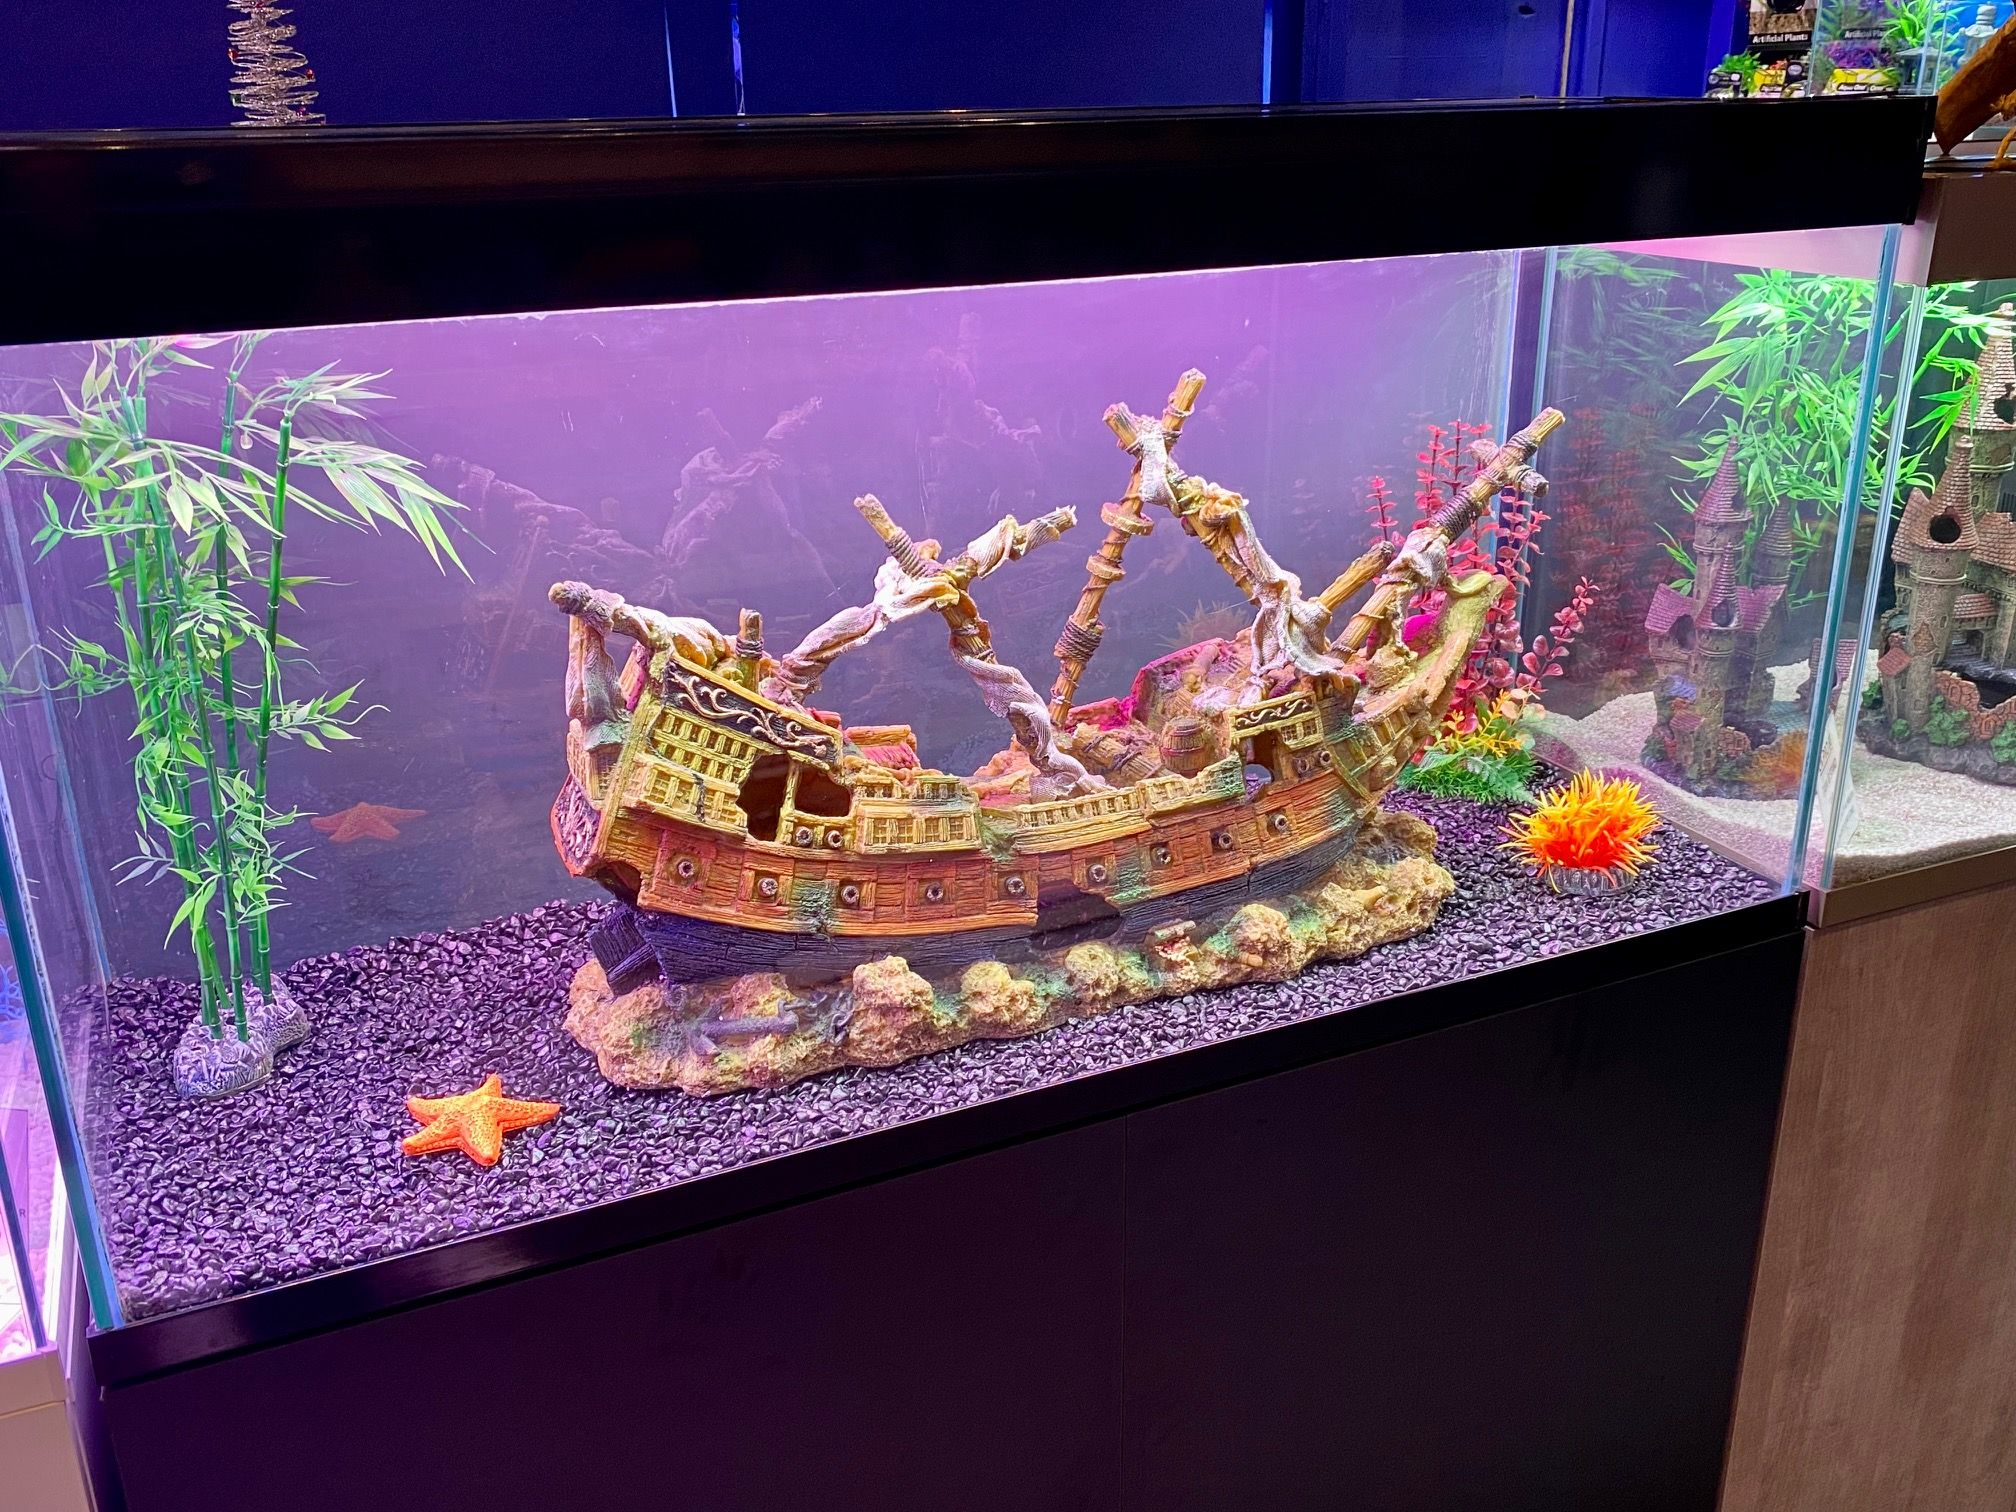 Xxl Eagle Pirate Ship Shipwreck Ruin Very Large Aquarium